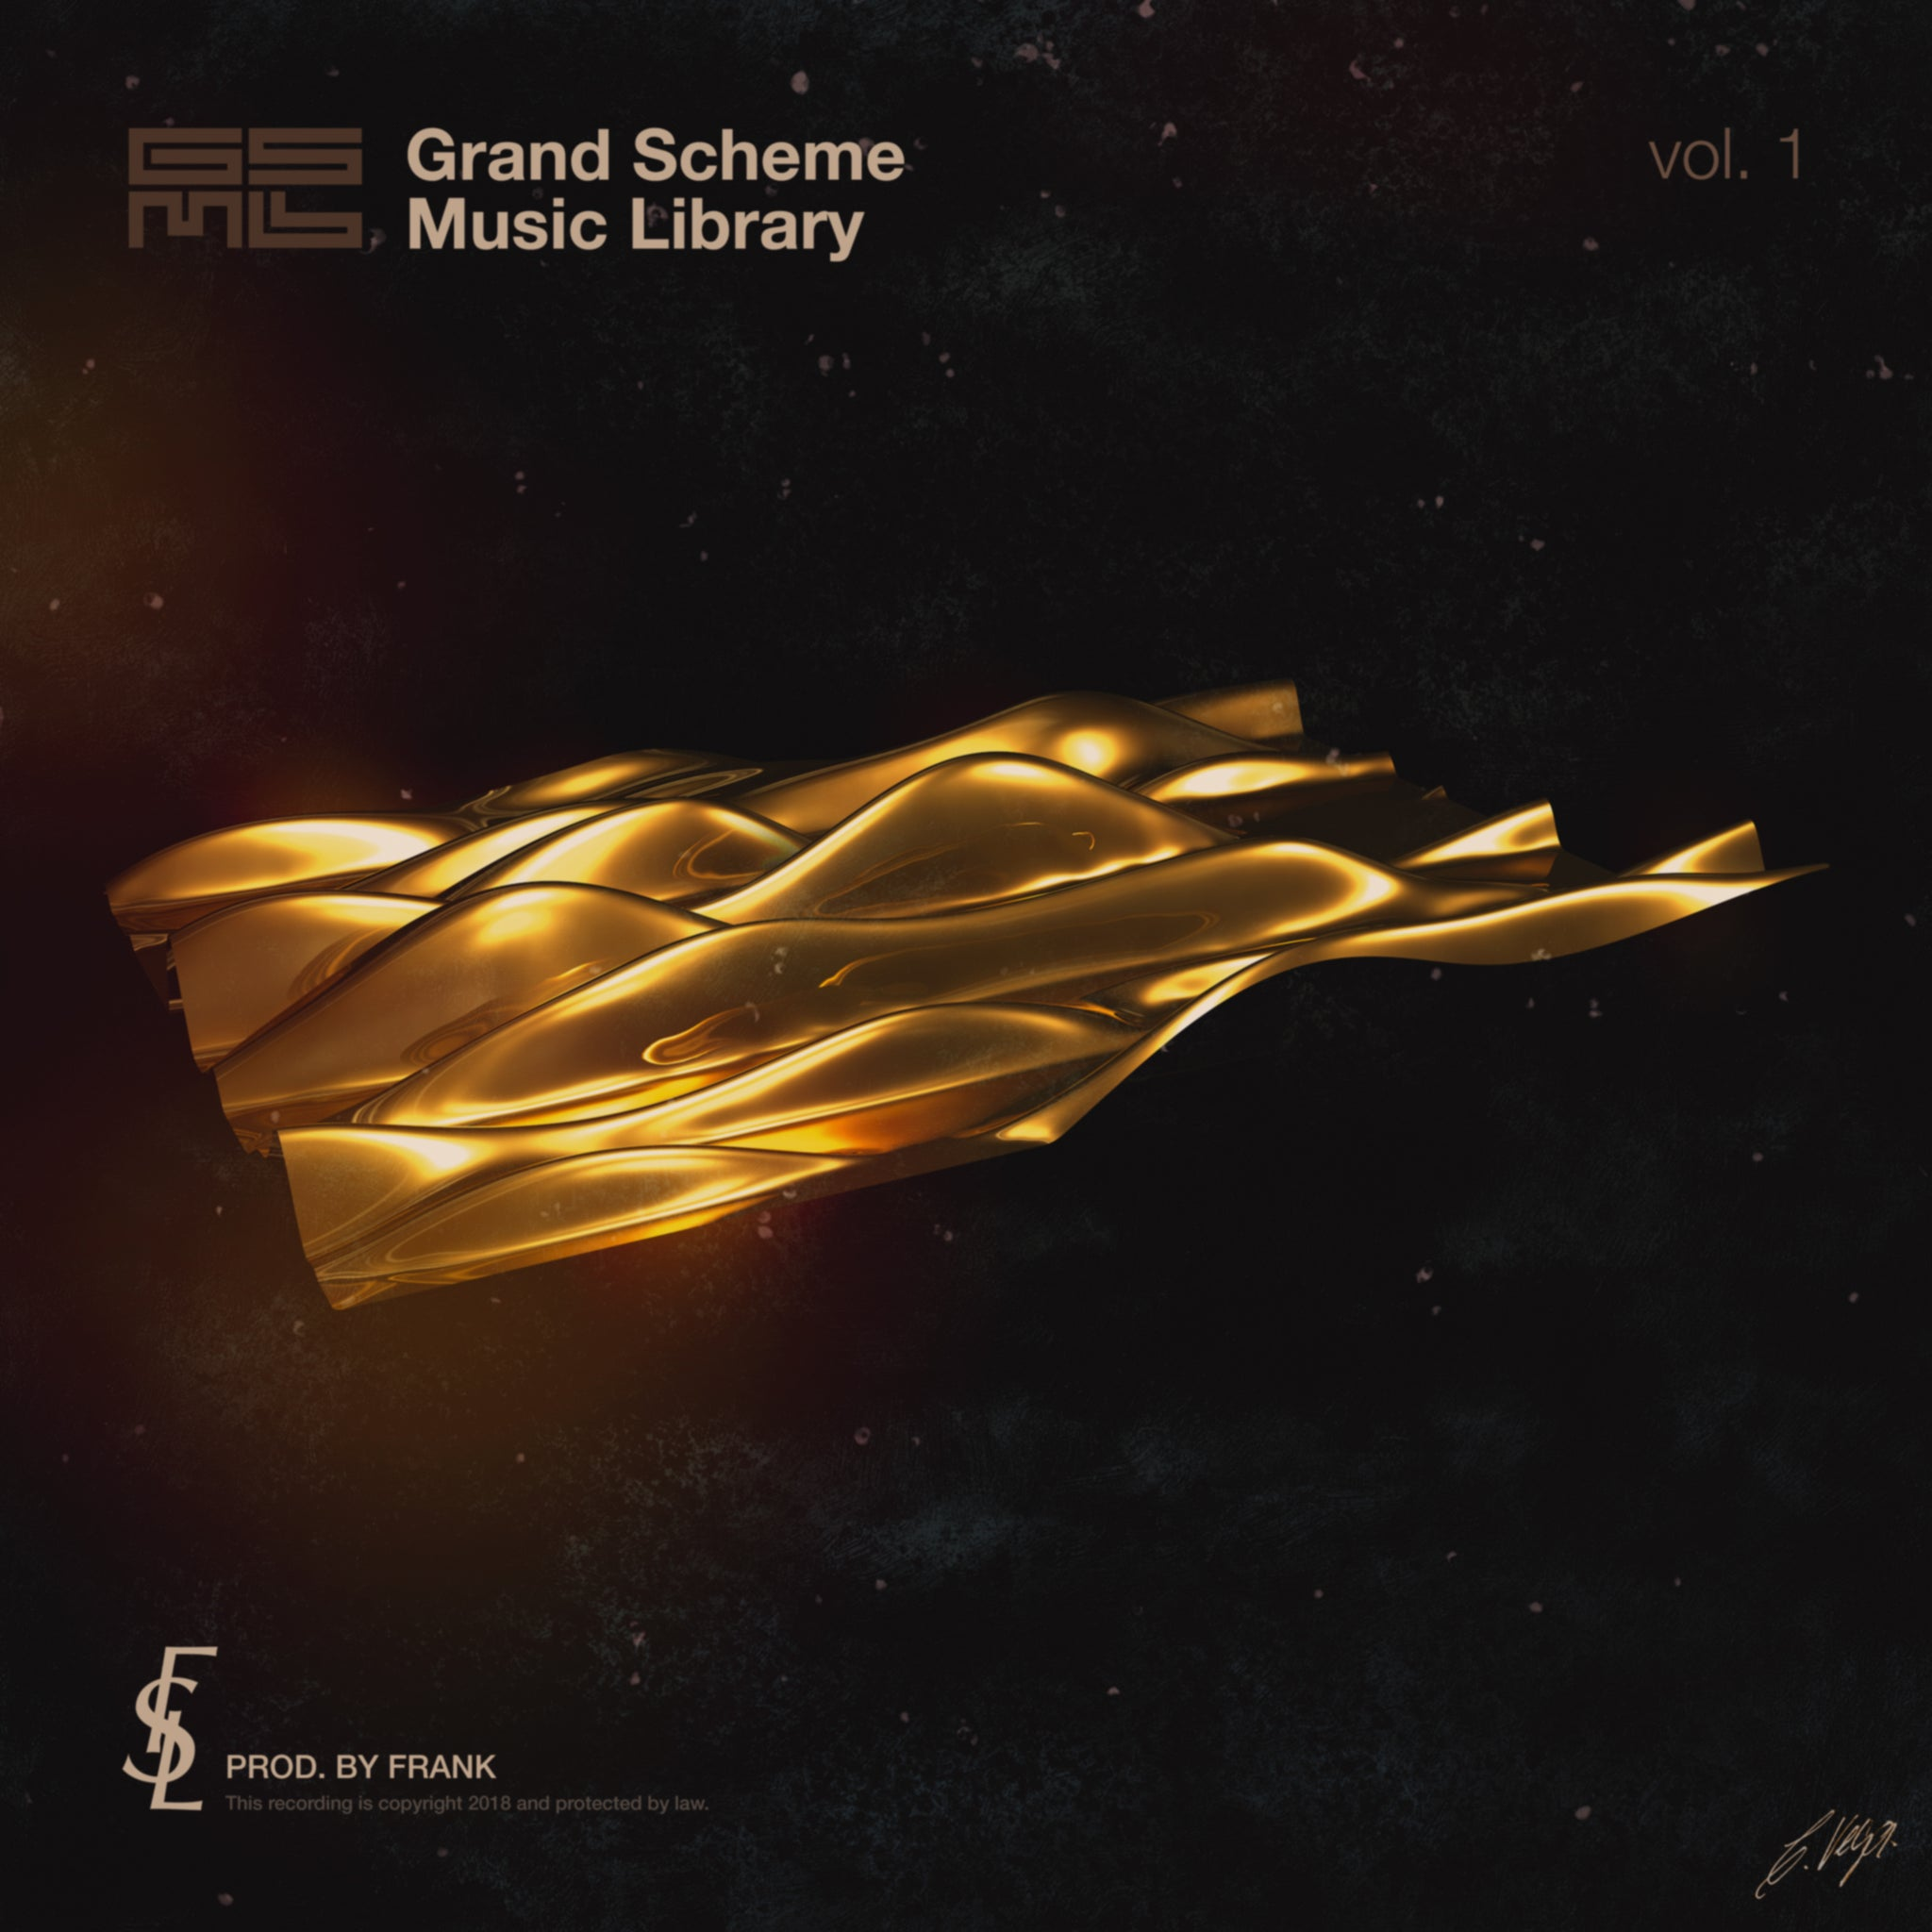 Grand Scheme Music Library Vol 1